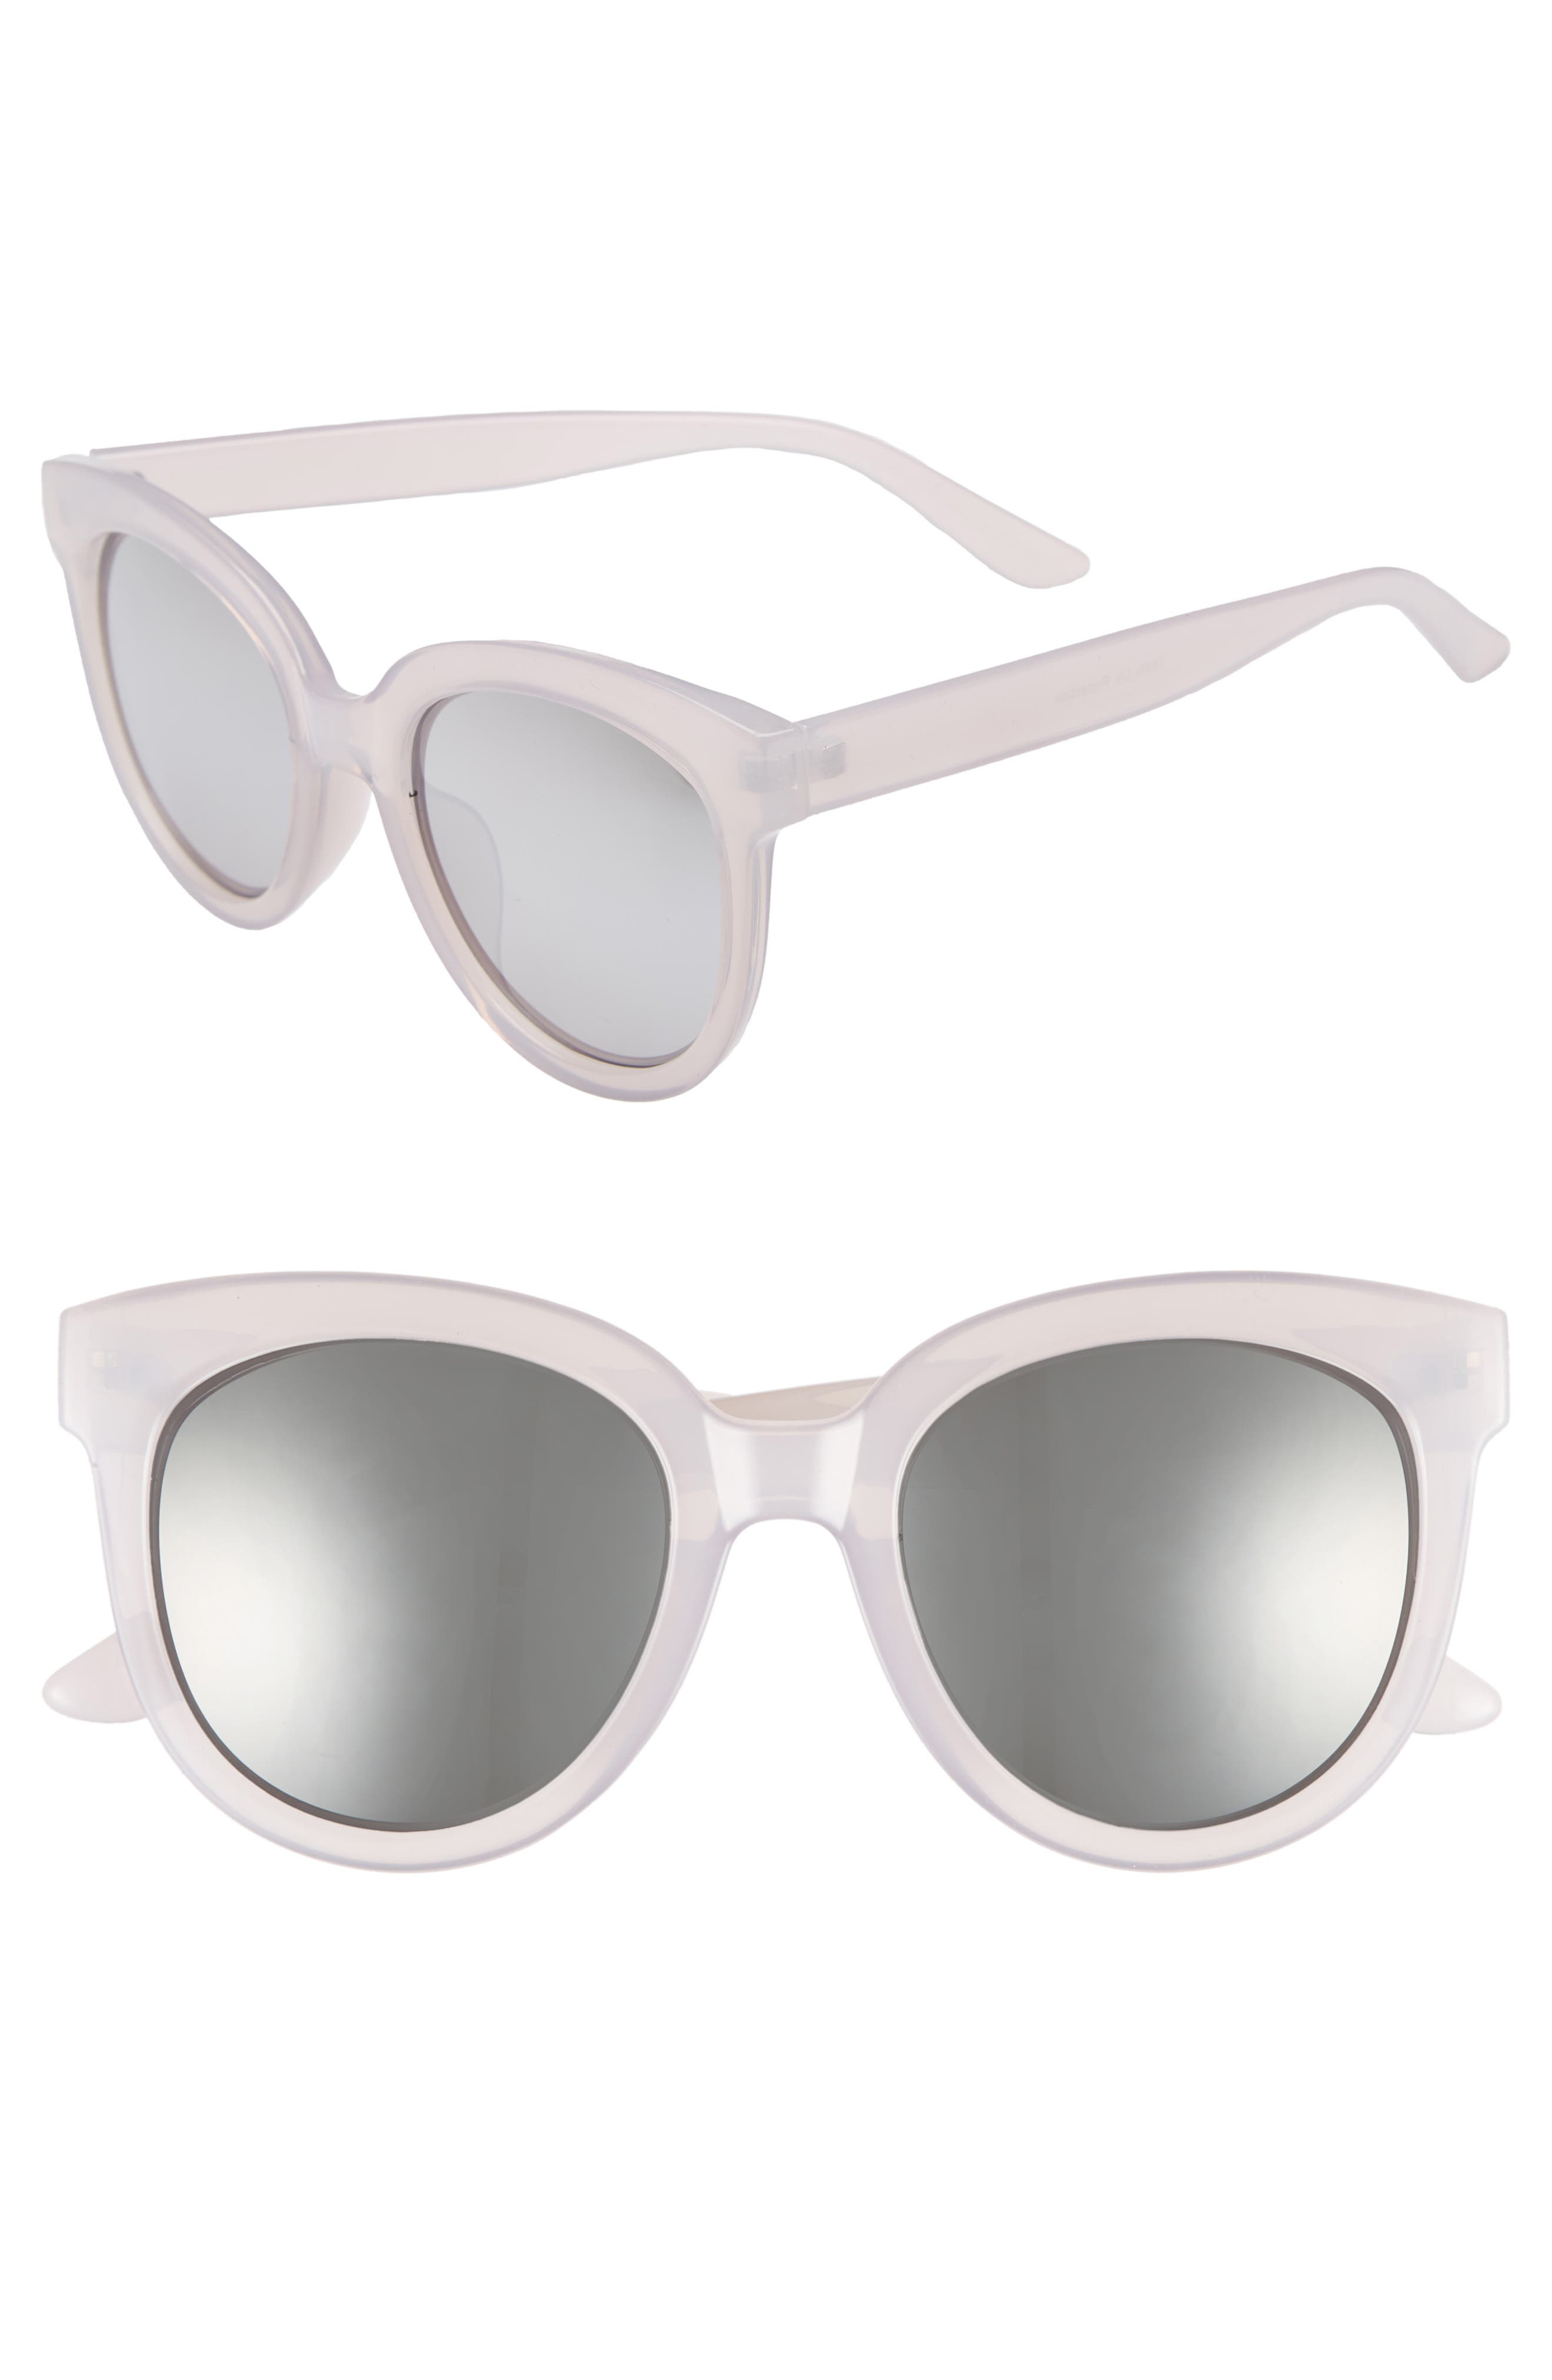 53mm Frosted Cat Eye Sunglasses,                             Main thumbnail 1, color,                             050